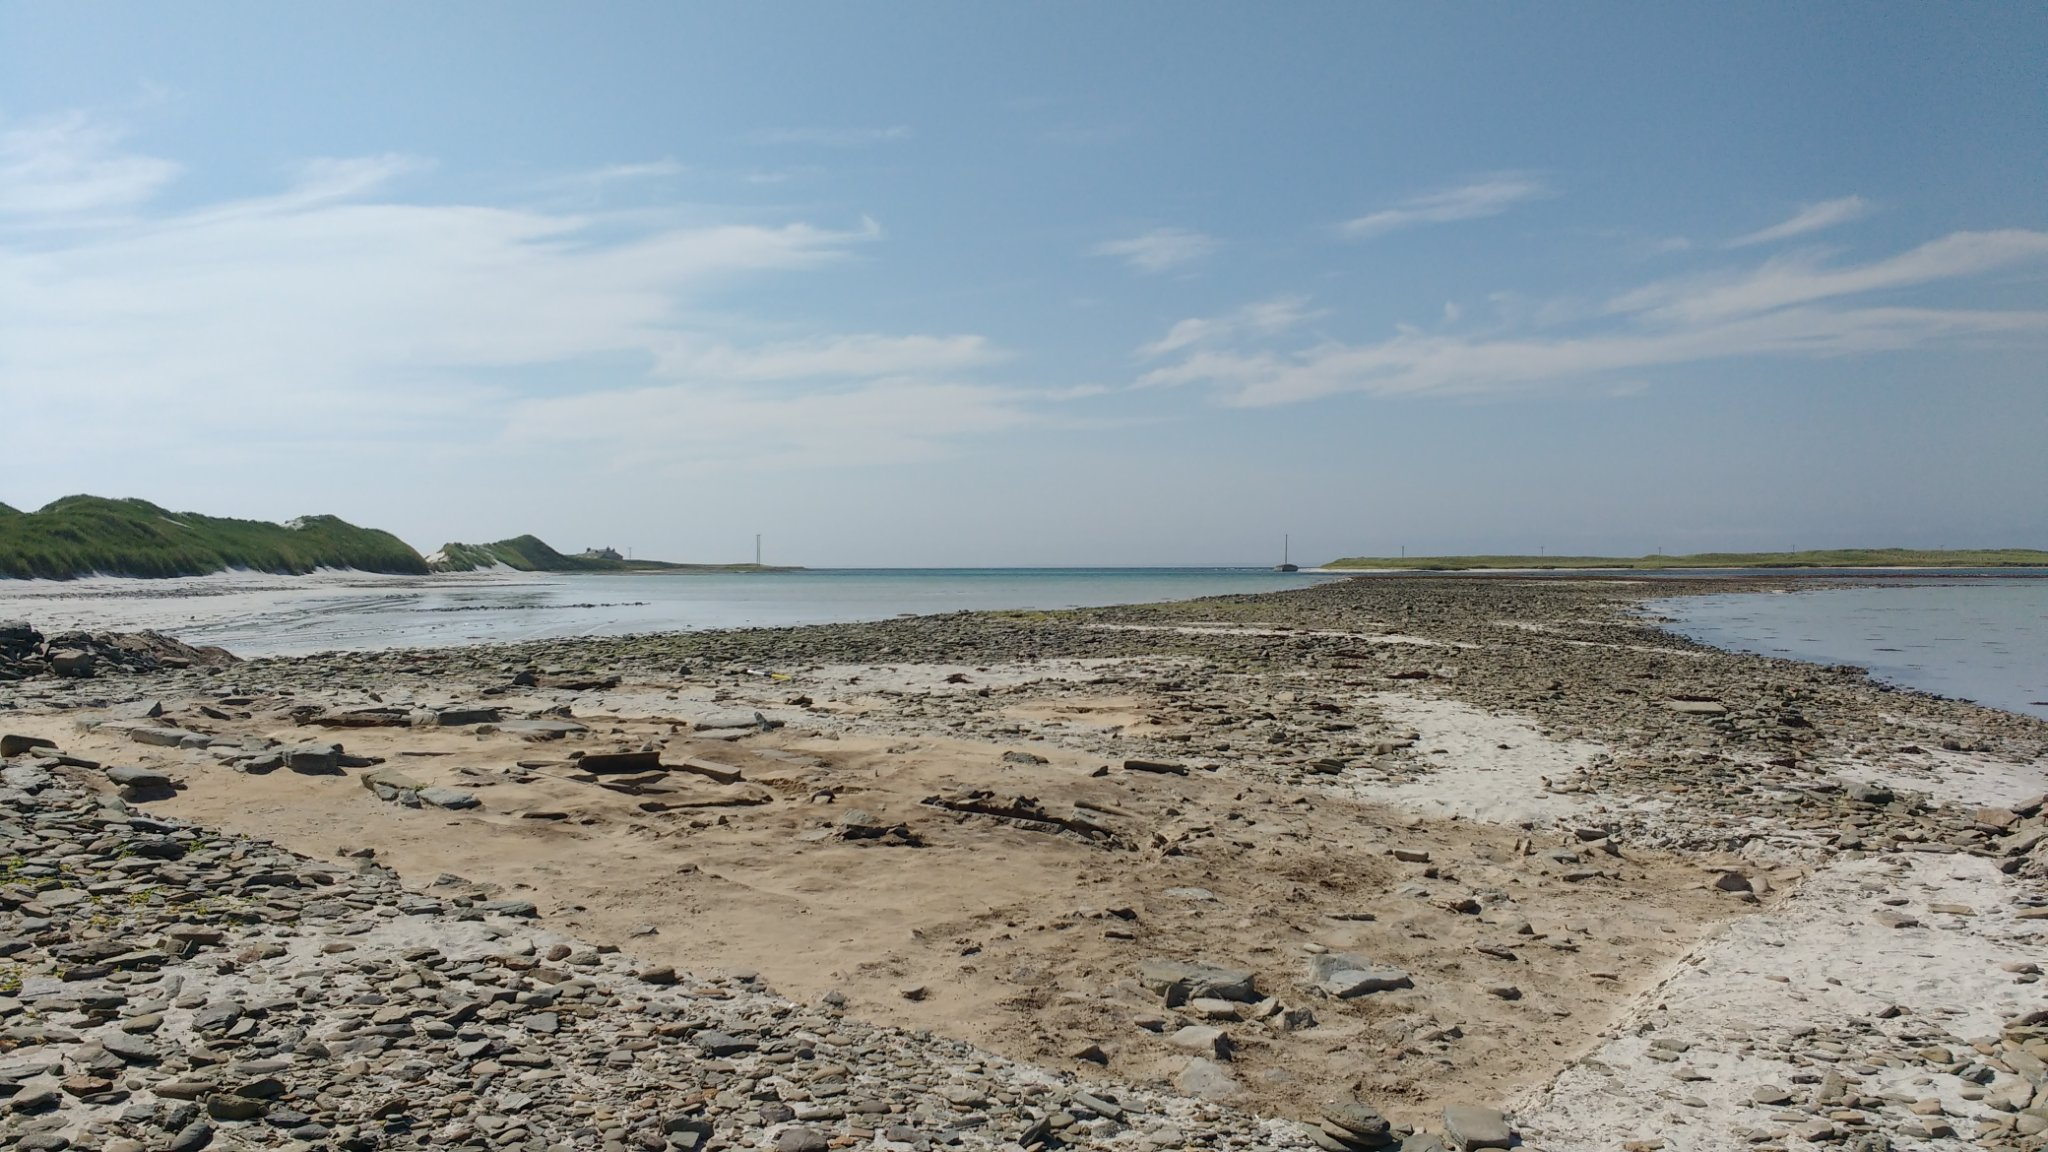 The stunning location of the Cata Sand excavation - image courtesy Archaeology Institute UHI